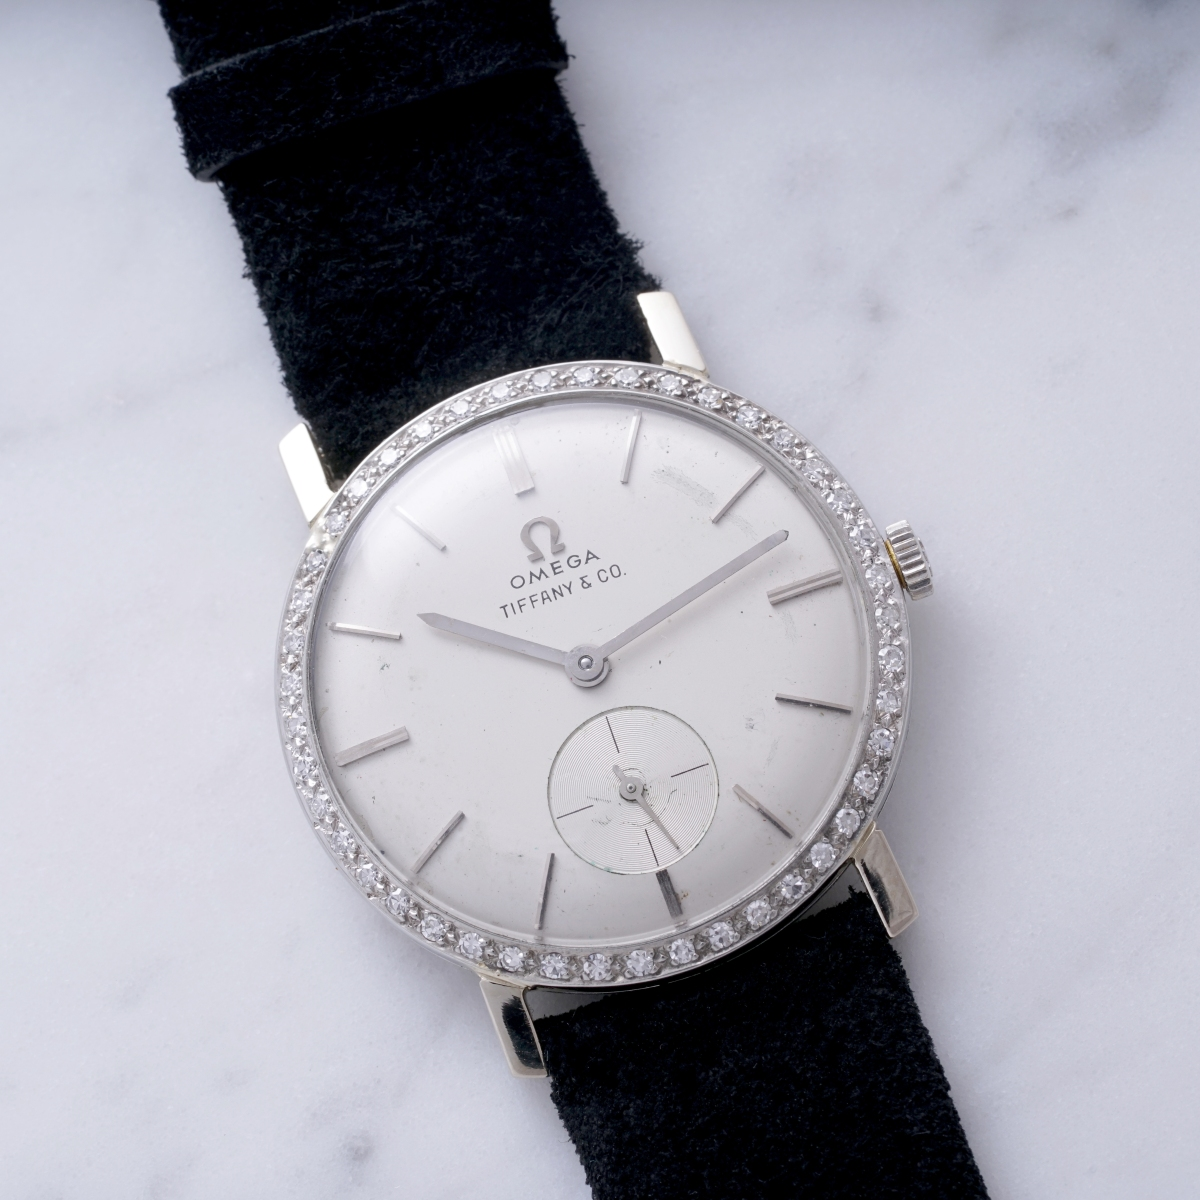 Phillips Auctions 6 Watches From Rolex And Omega For Over 1 Million